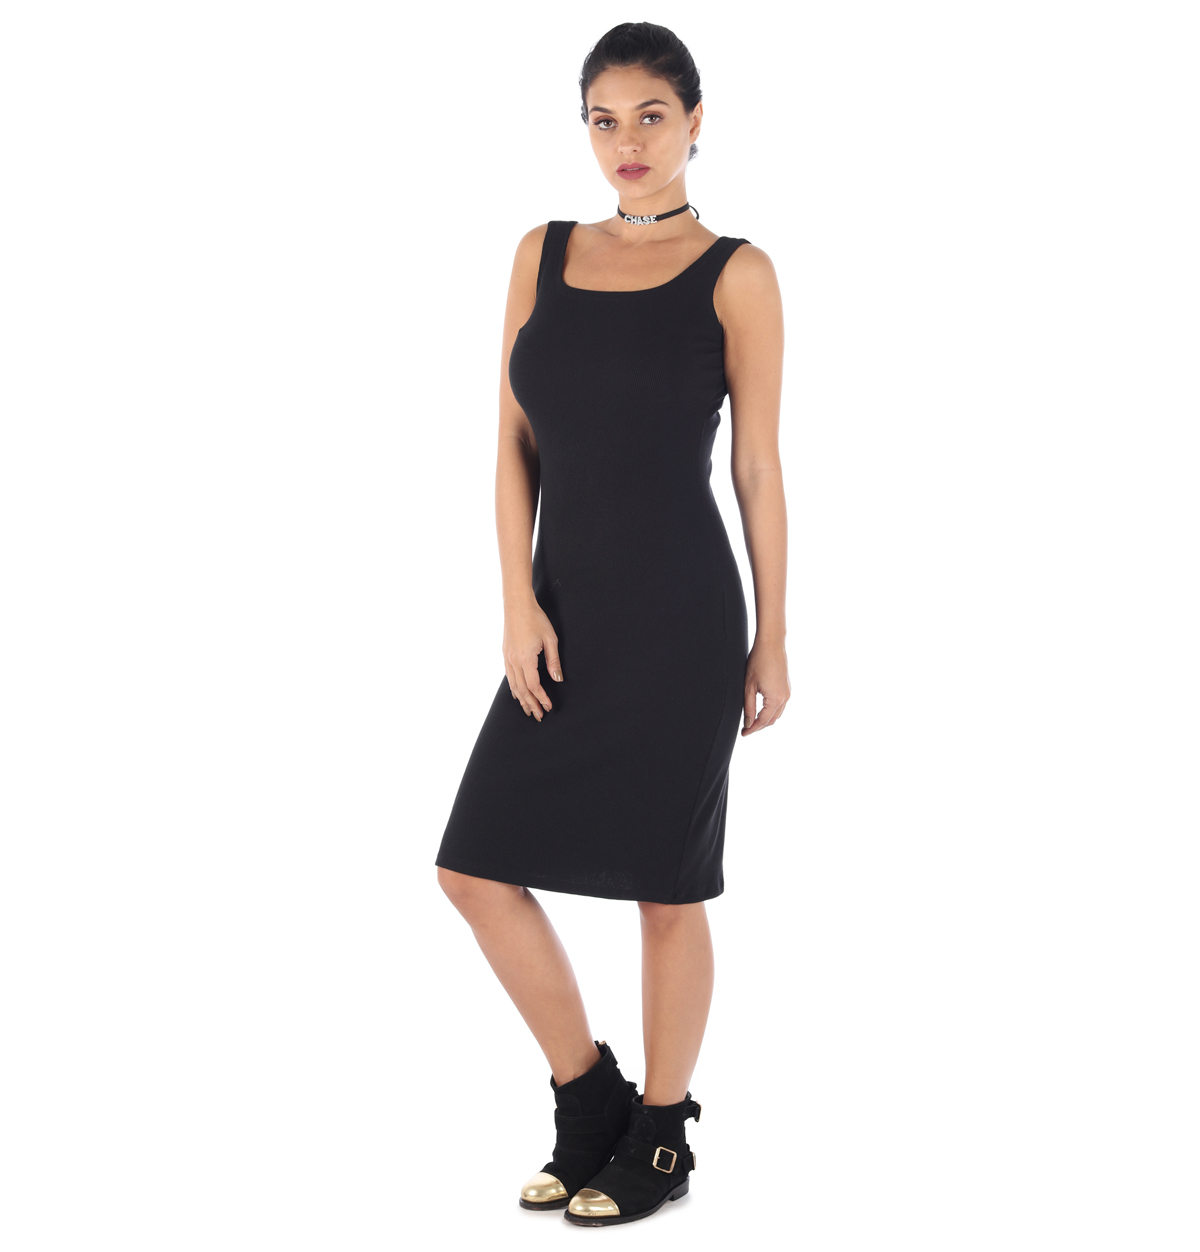 VESTIDO_RIB__02_BLACK_SIDE1.jpg